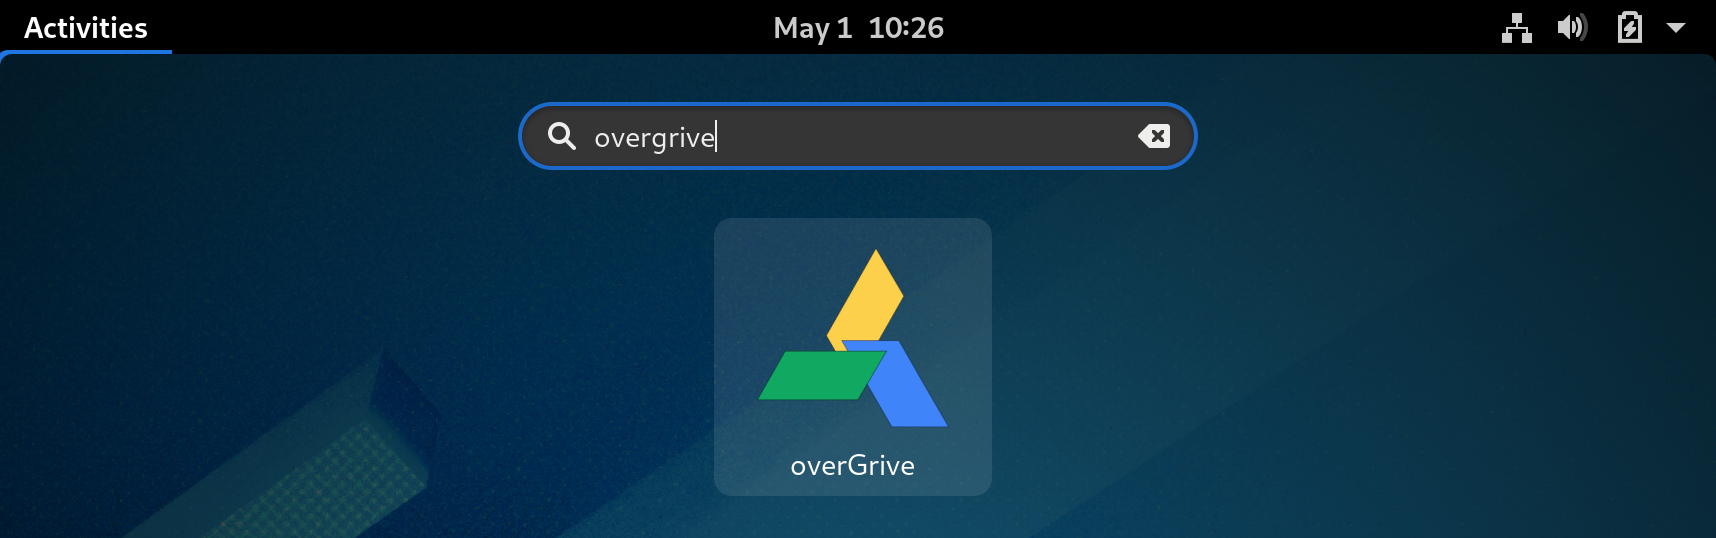 overGrive - Arch Linux Installation Instructions | The Fan